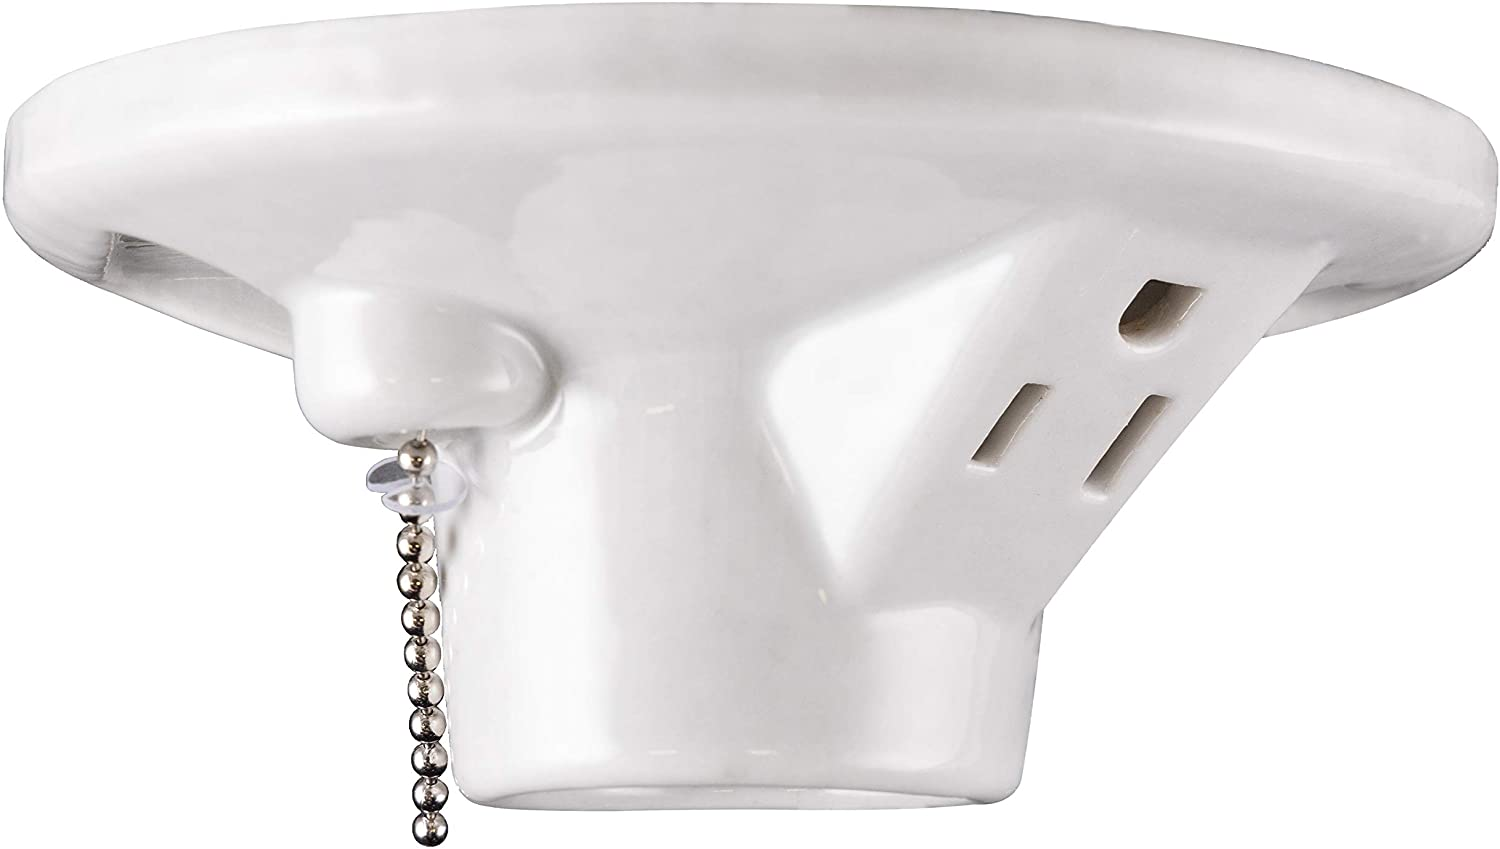 GE Porcelain Lampholder, Grounded with Pull Chain, White 18305